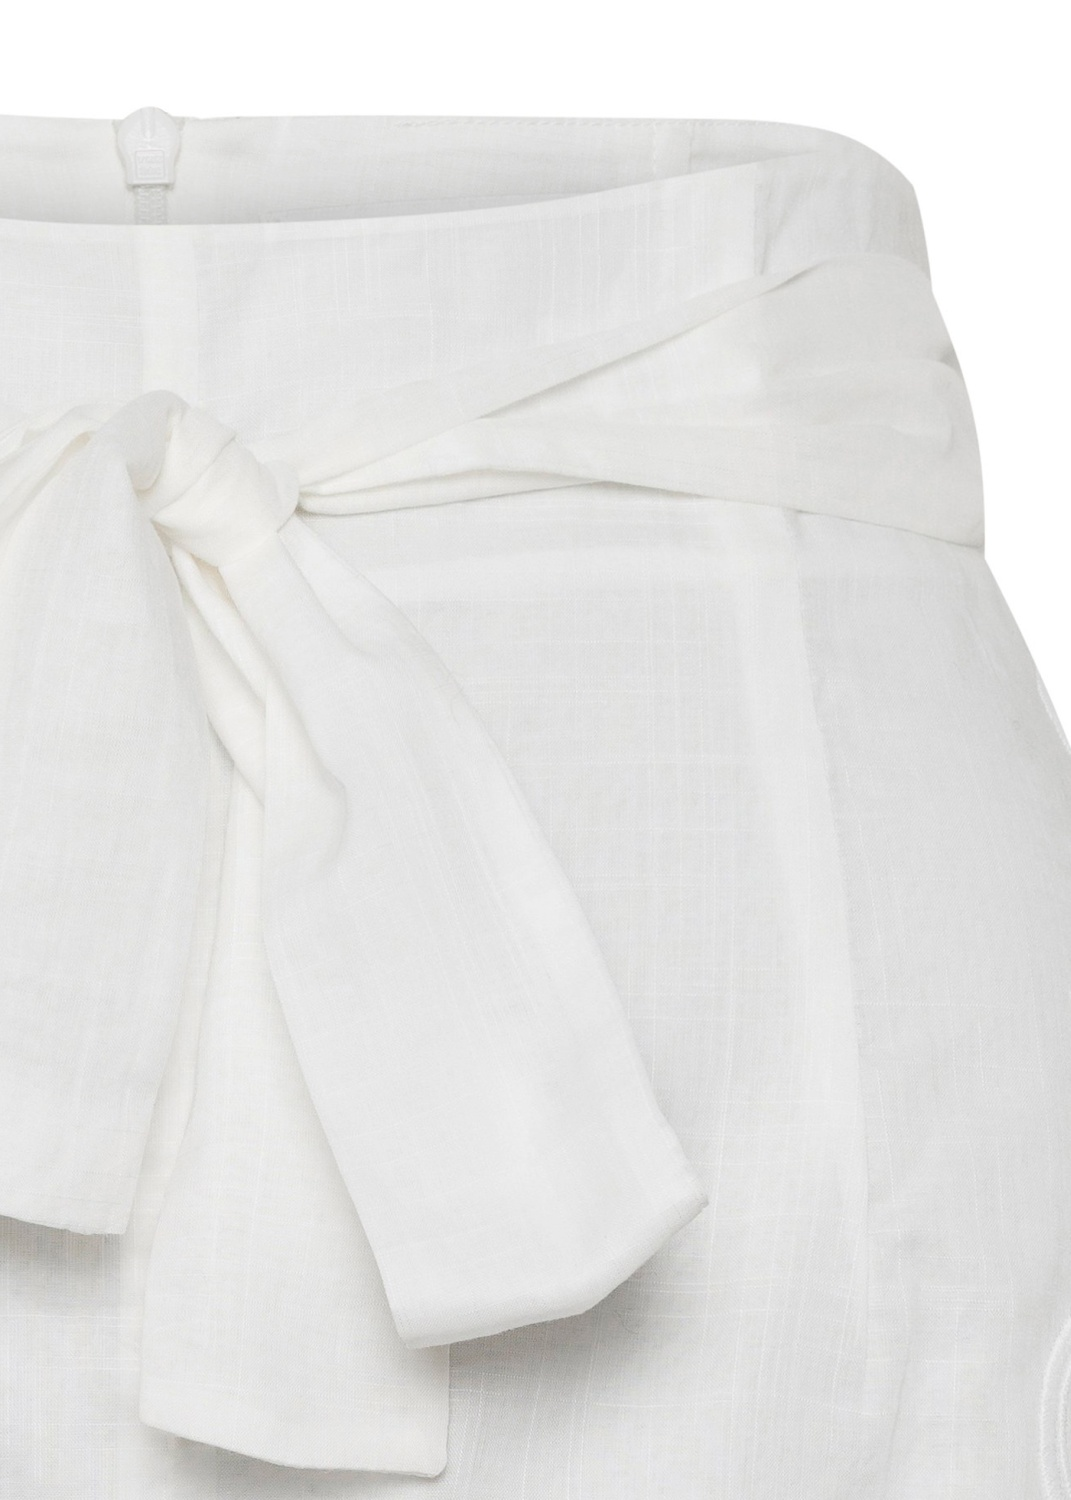 Lulu Scallop Shorts image number 2